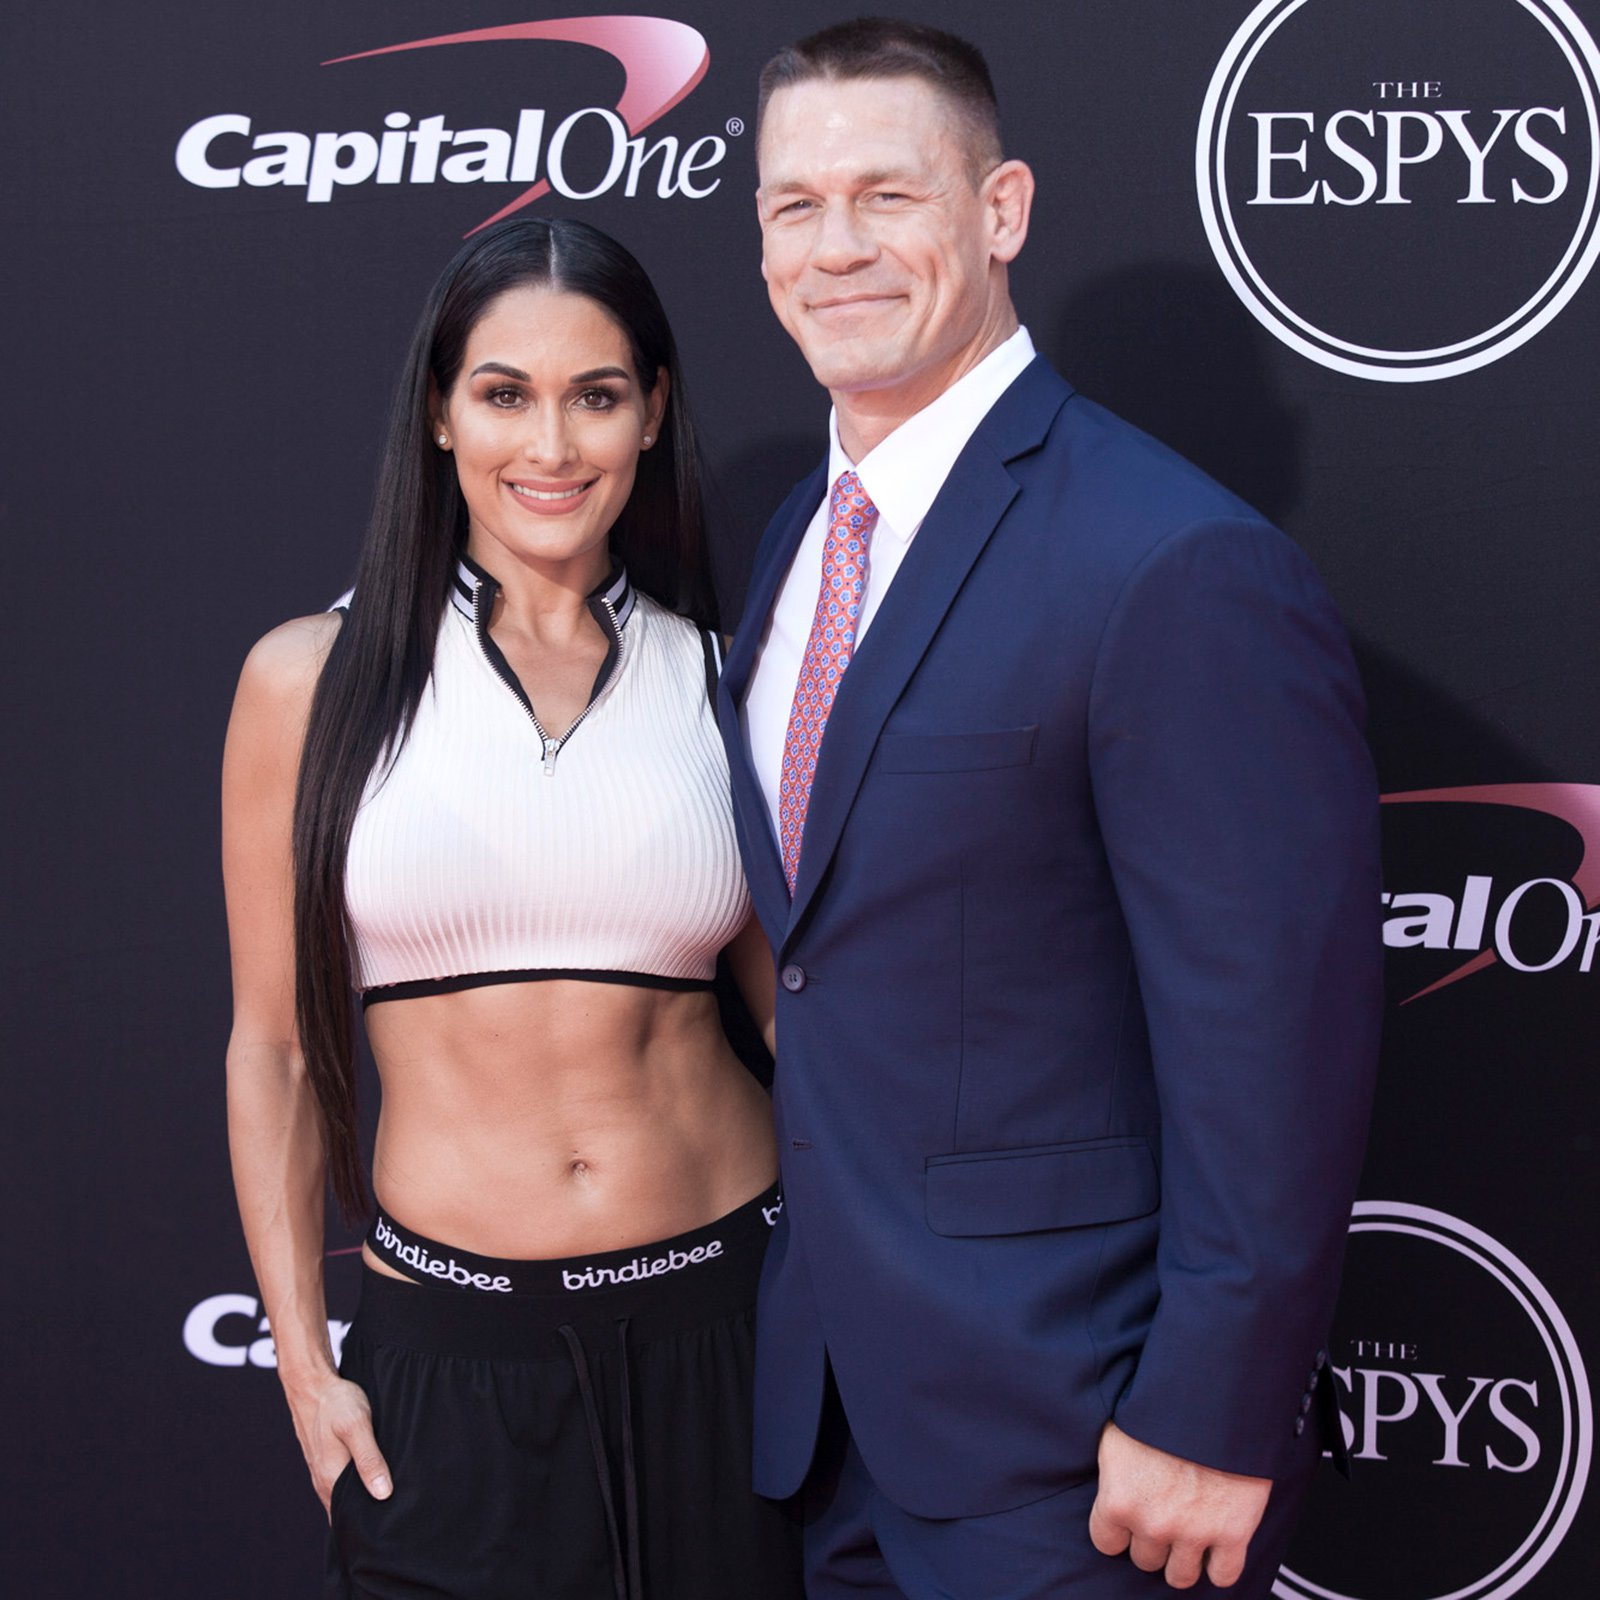 Nikki Bella and John Cena walk the red carpet at the 2017 ESPYs.